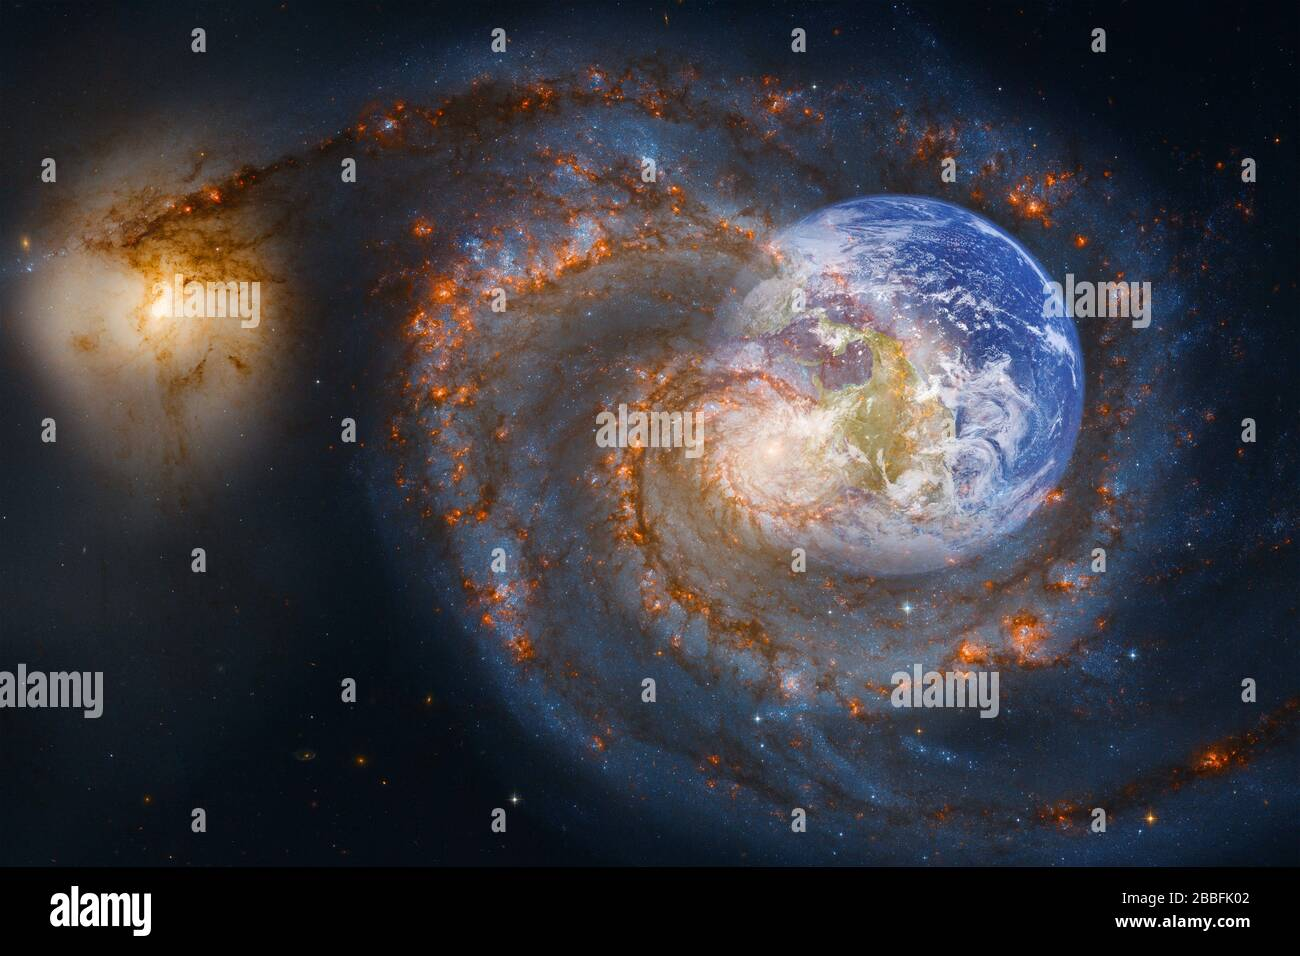 earth and galaxy awesome science fiction wallpaper elements of this image furnished by nasa 2BBFK02